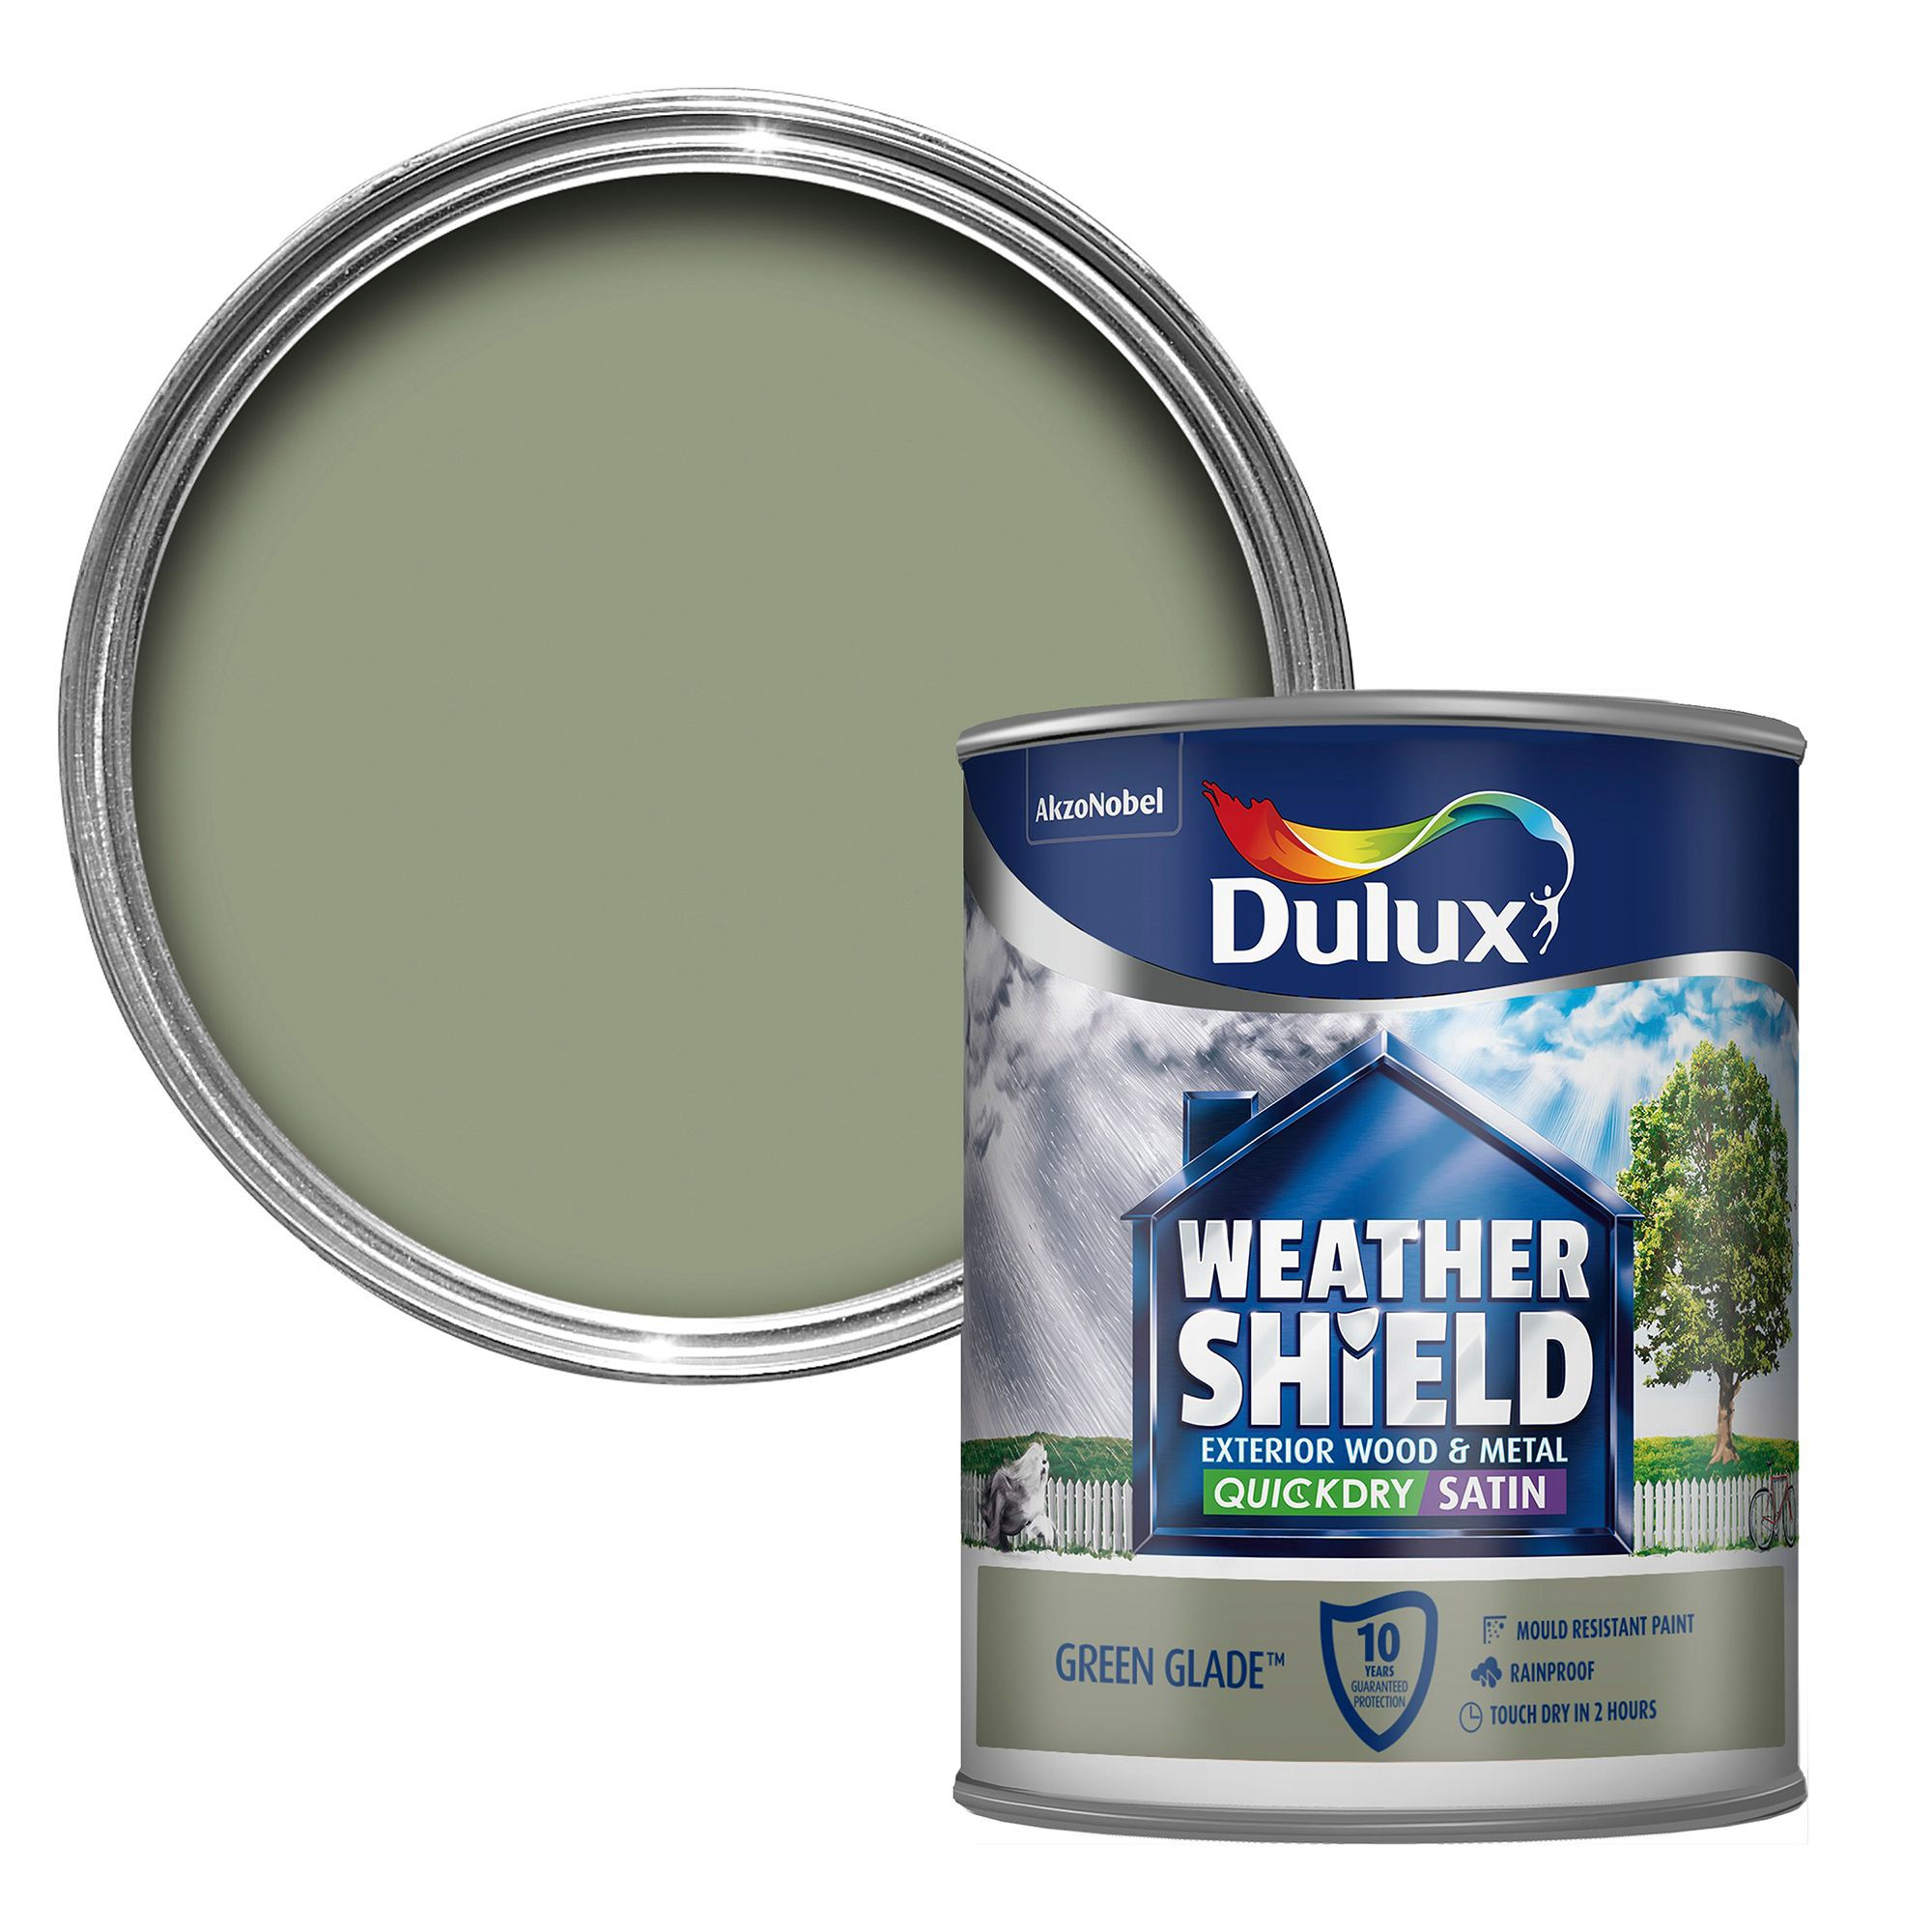 Dulux Weathershield Exterior Glade Green Satin Wood & Metal Paint 750ml